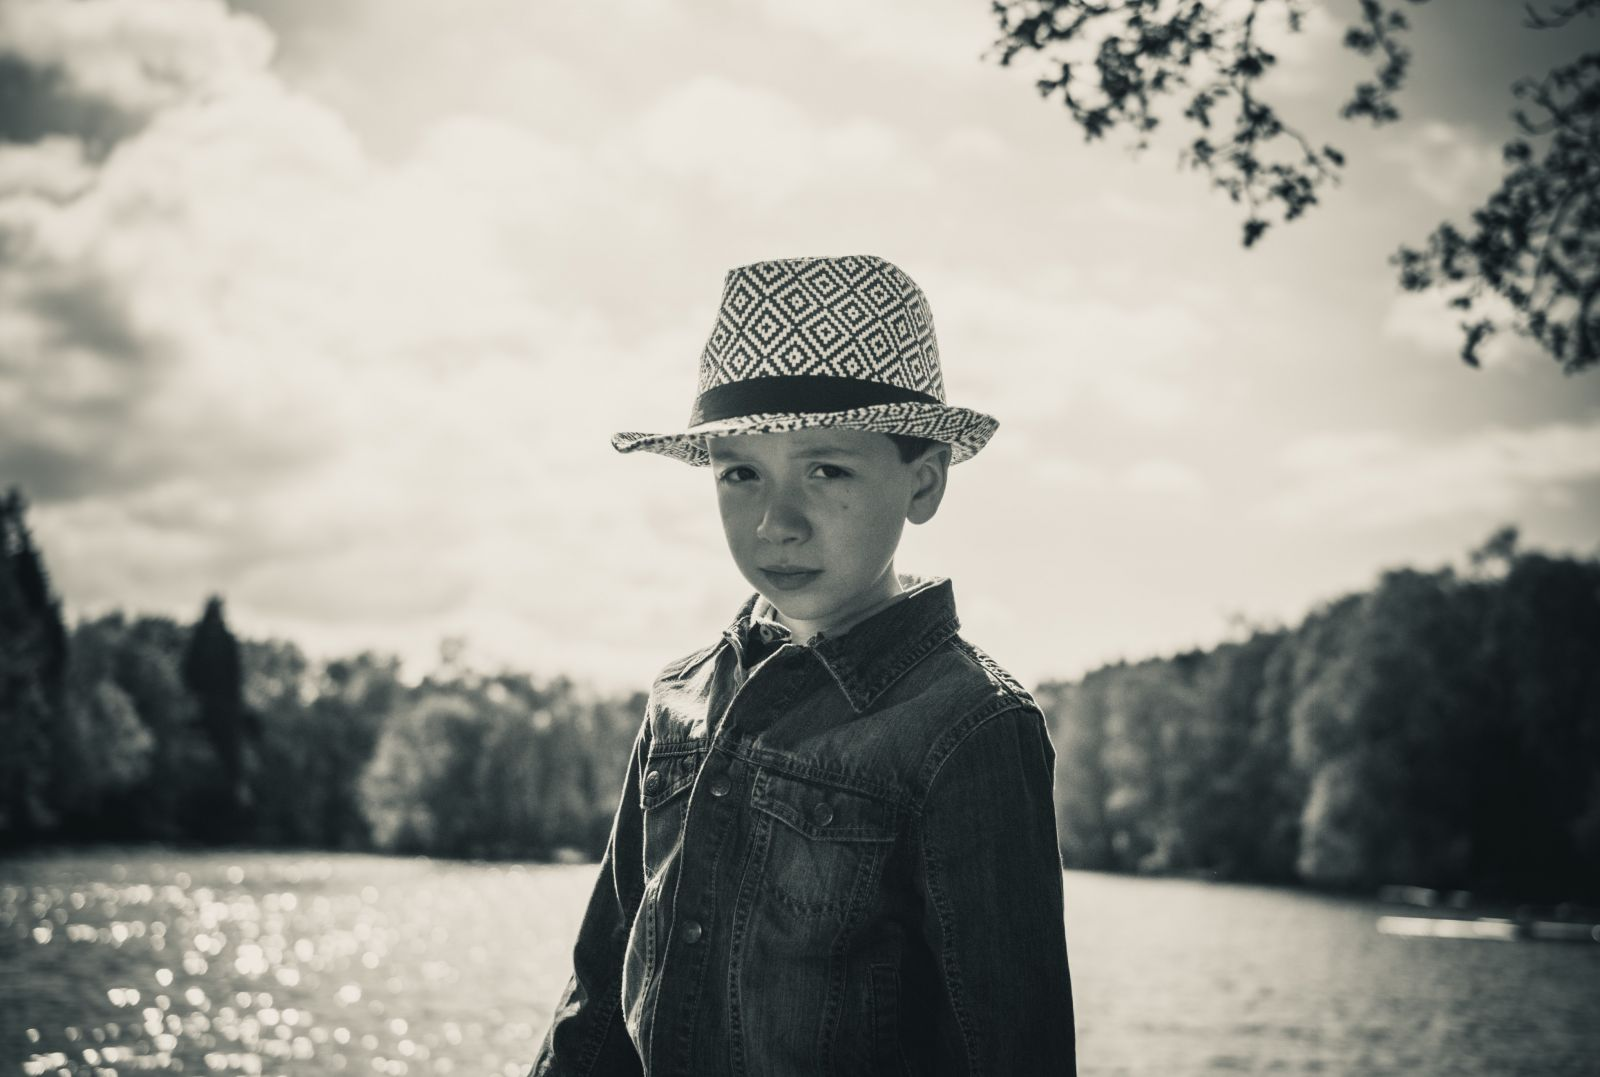 Boy in hat at Coppice Pond, Bingley, UK